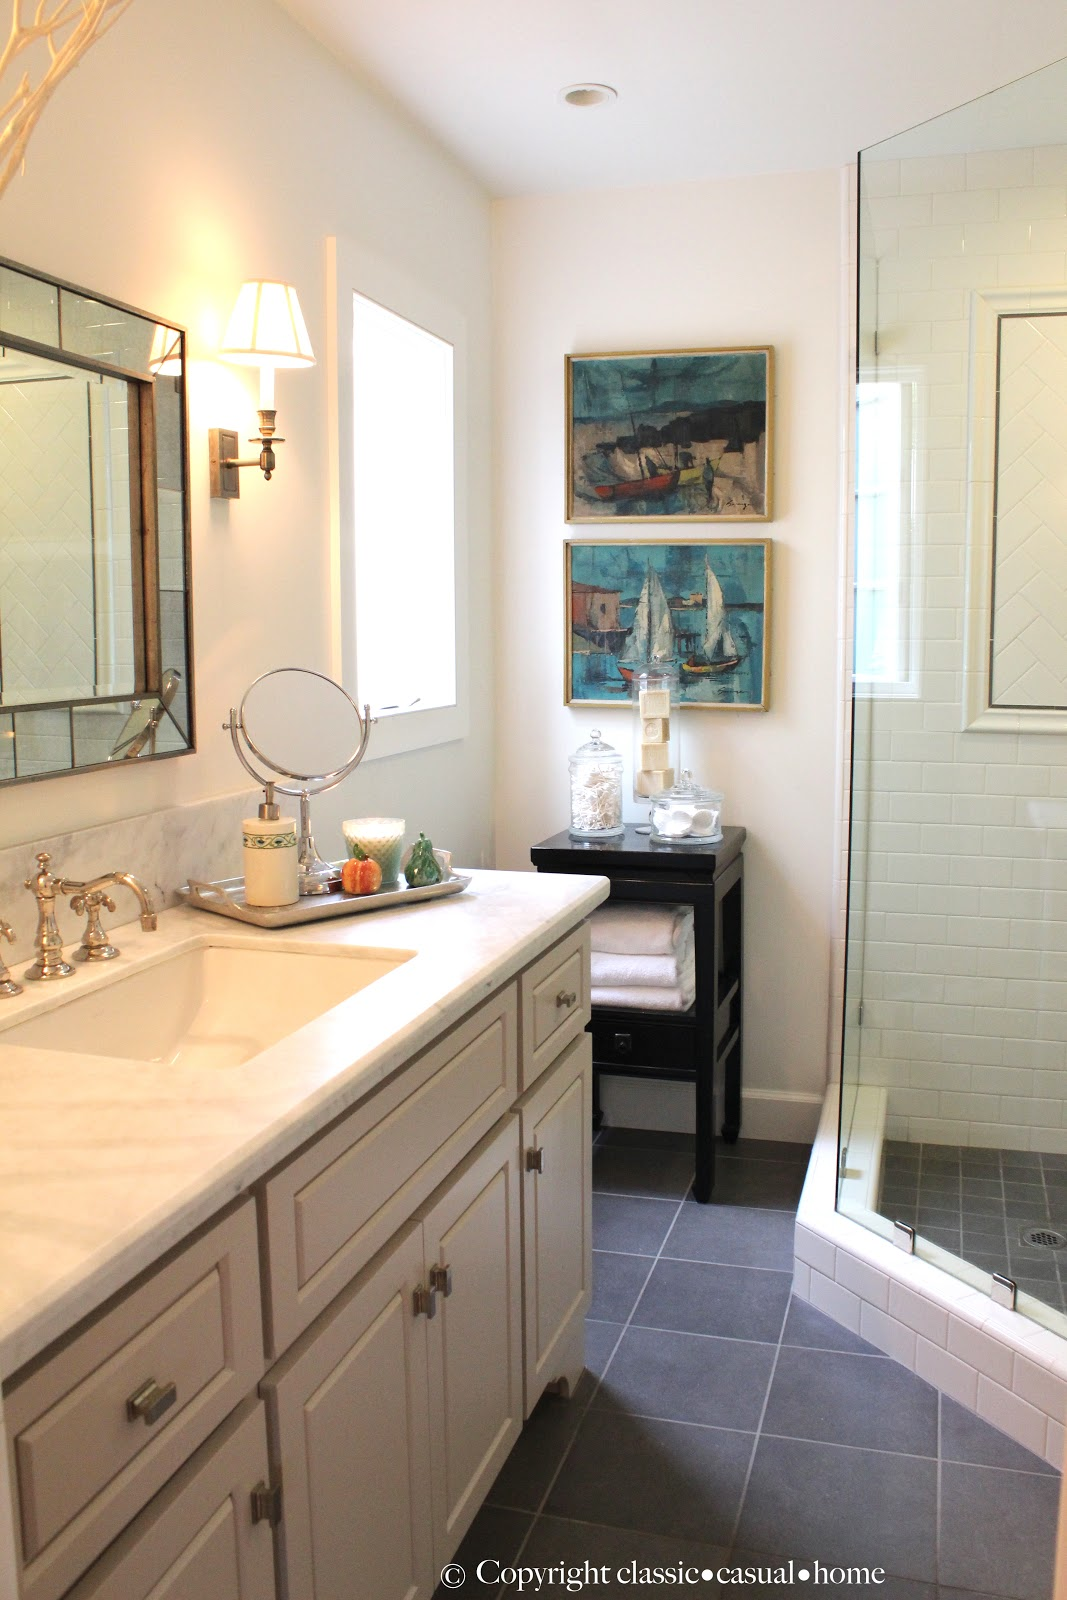 Beach Bath Remodel Sources - Classic Casual Home